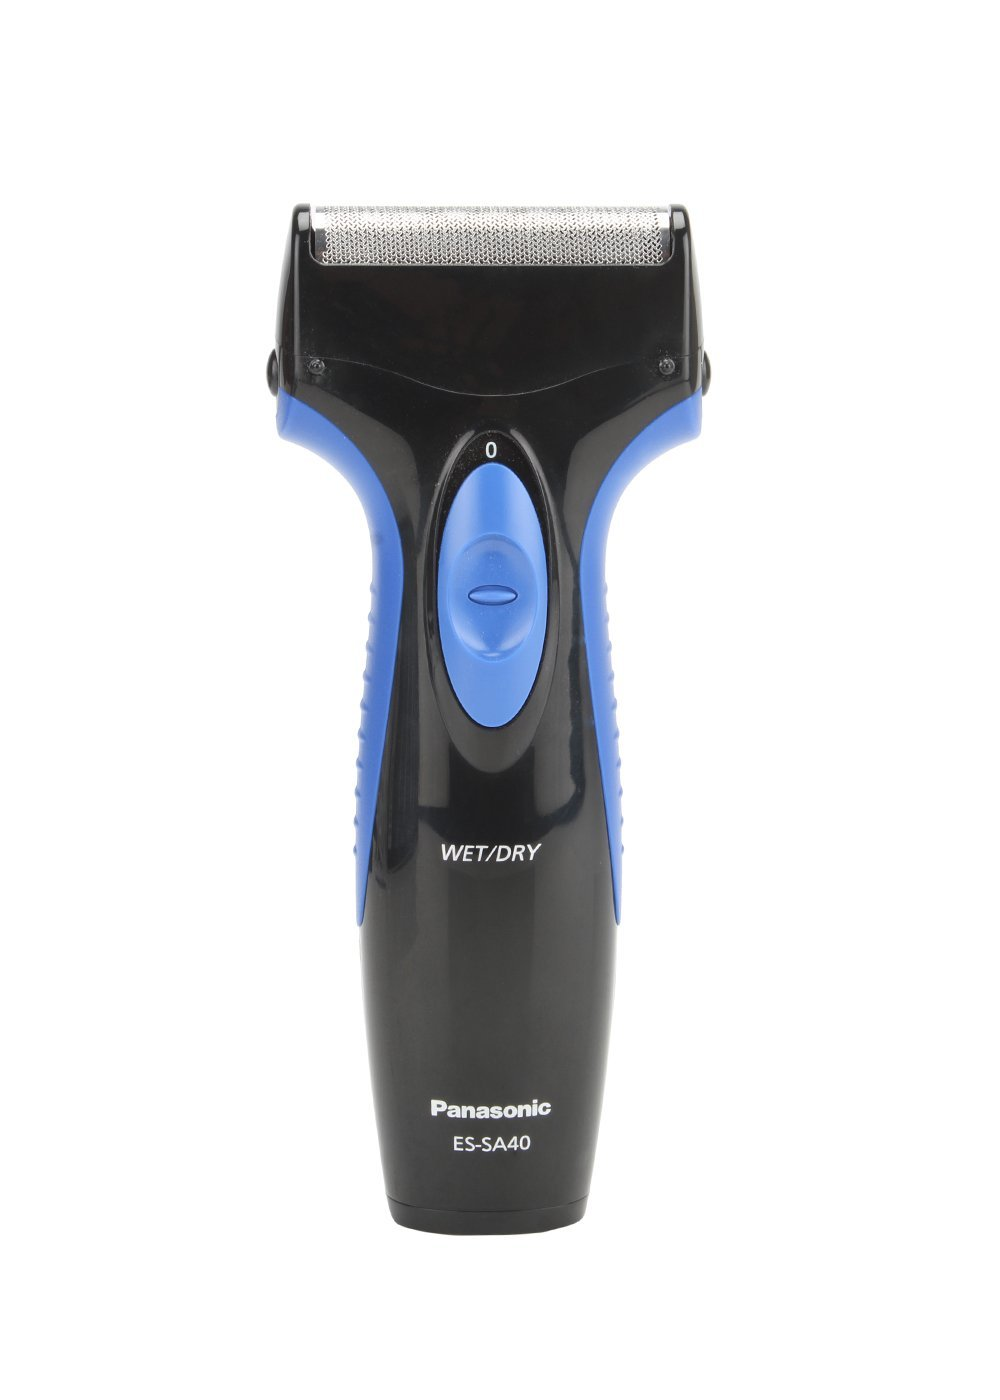 Best Panasonic Brand Electric Shaver for men in India in 2020